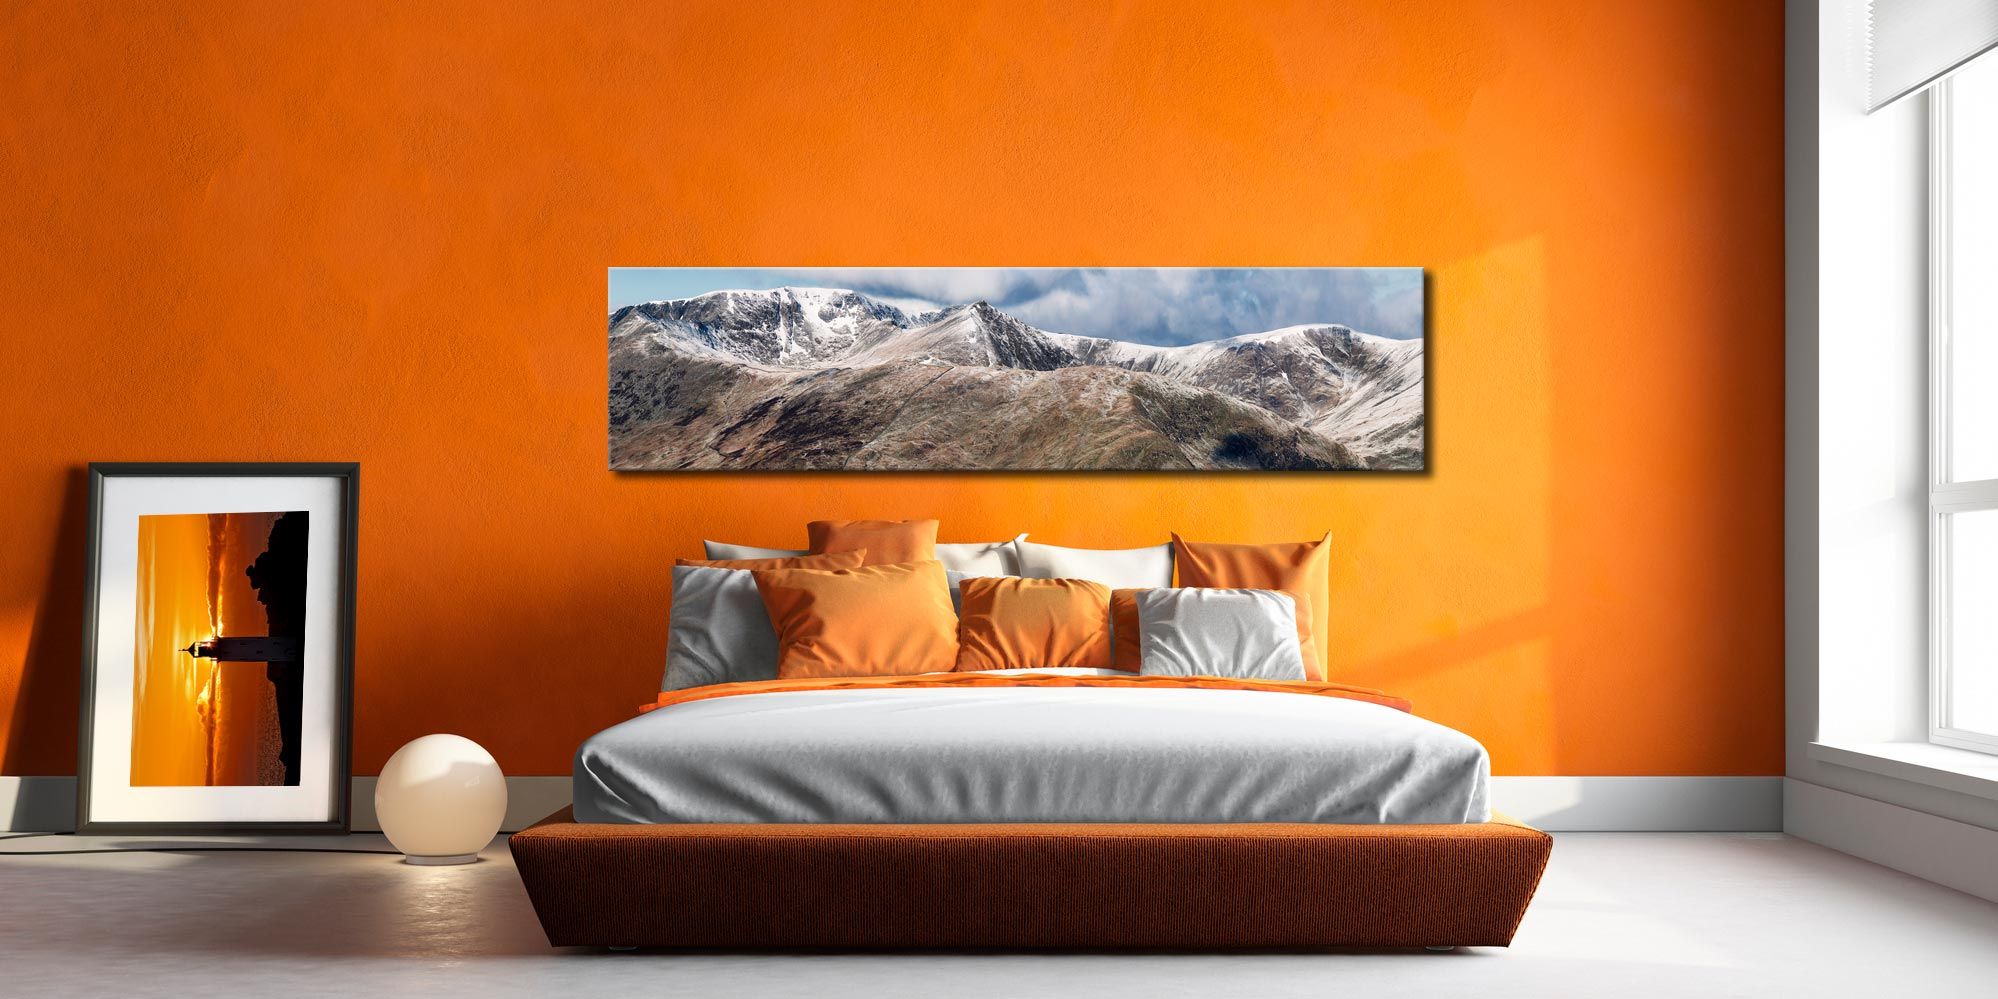 Helvellyn Mountains Panorama - Print Aluminium Backing With Acrylic Glazing on Wall